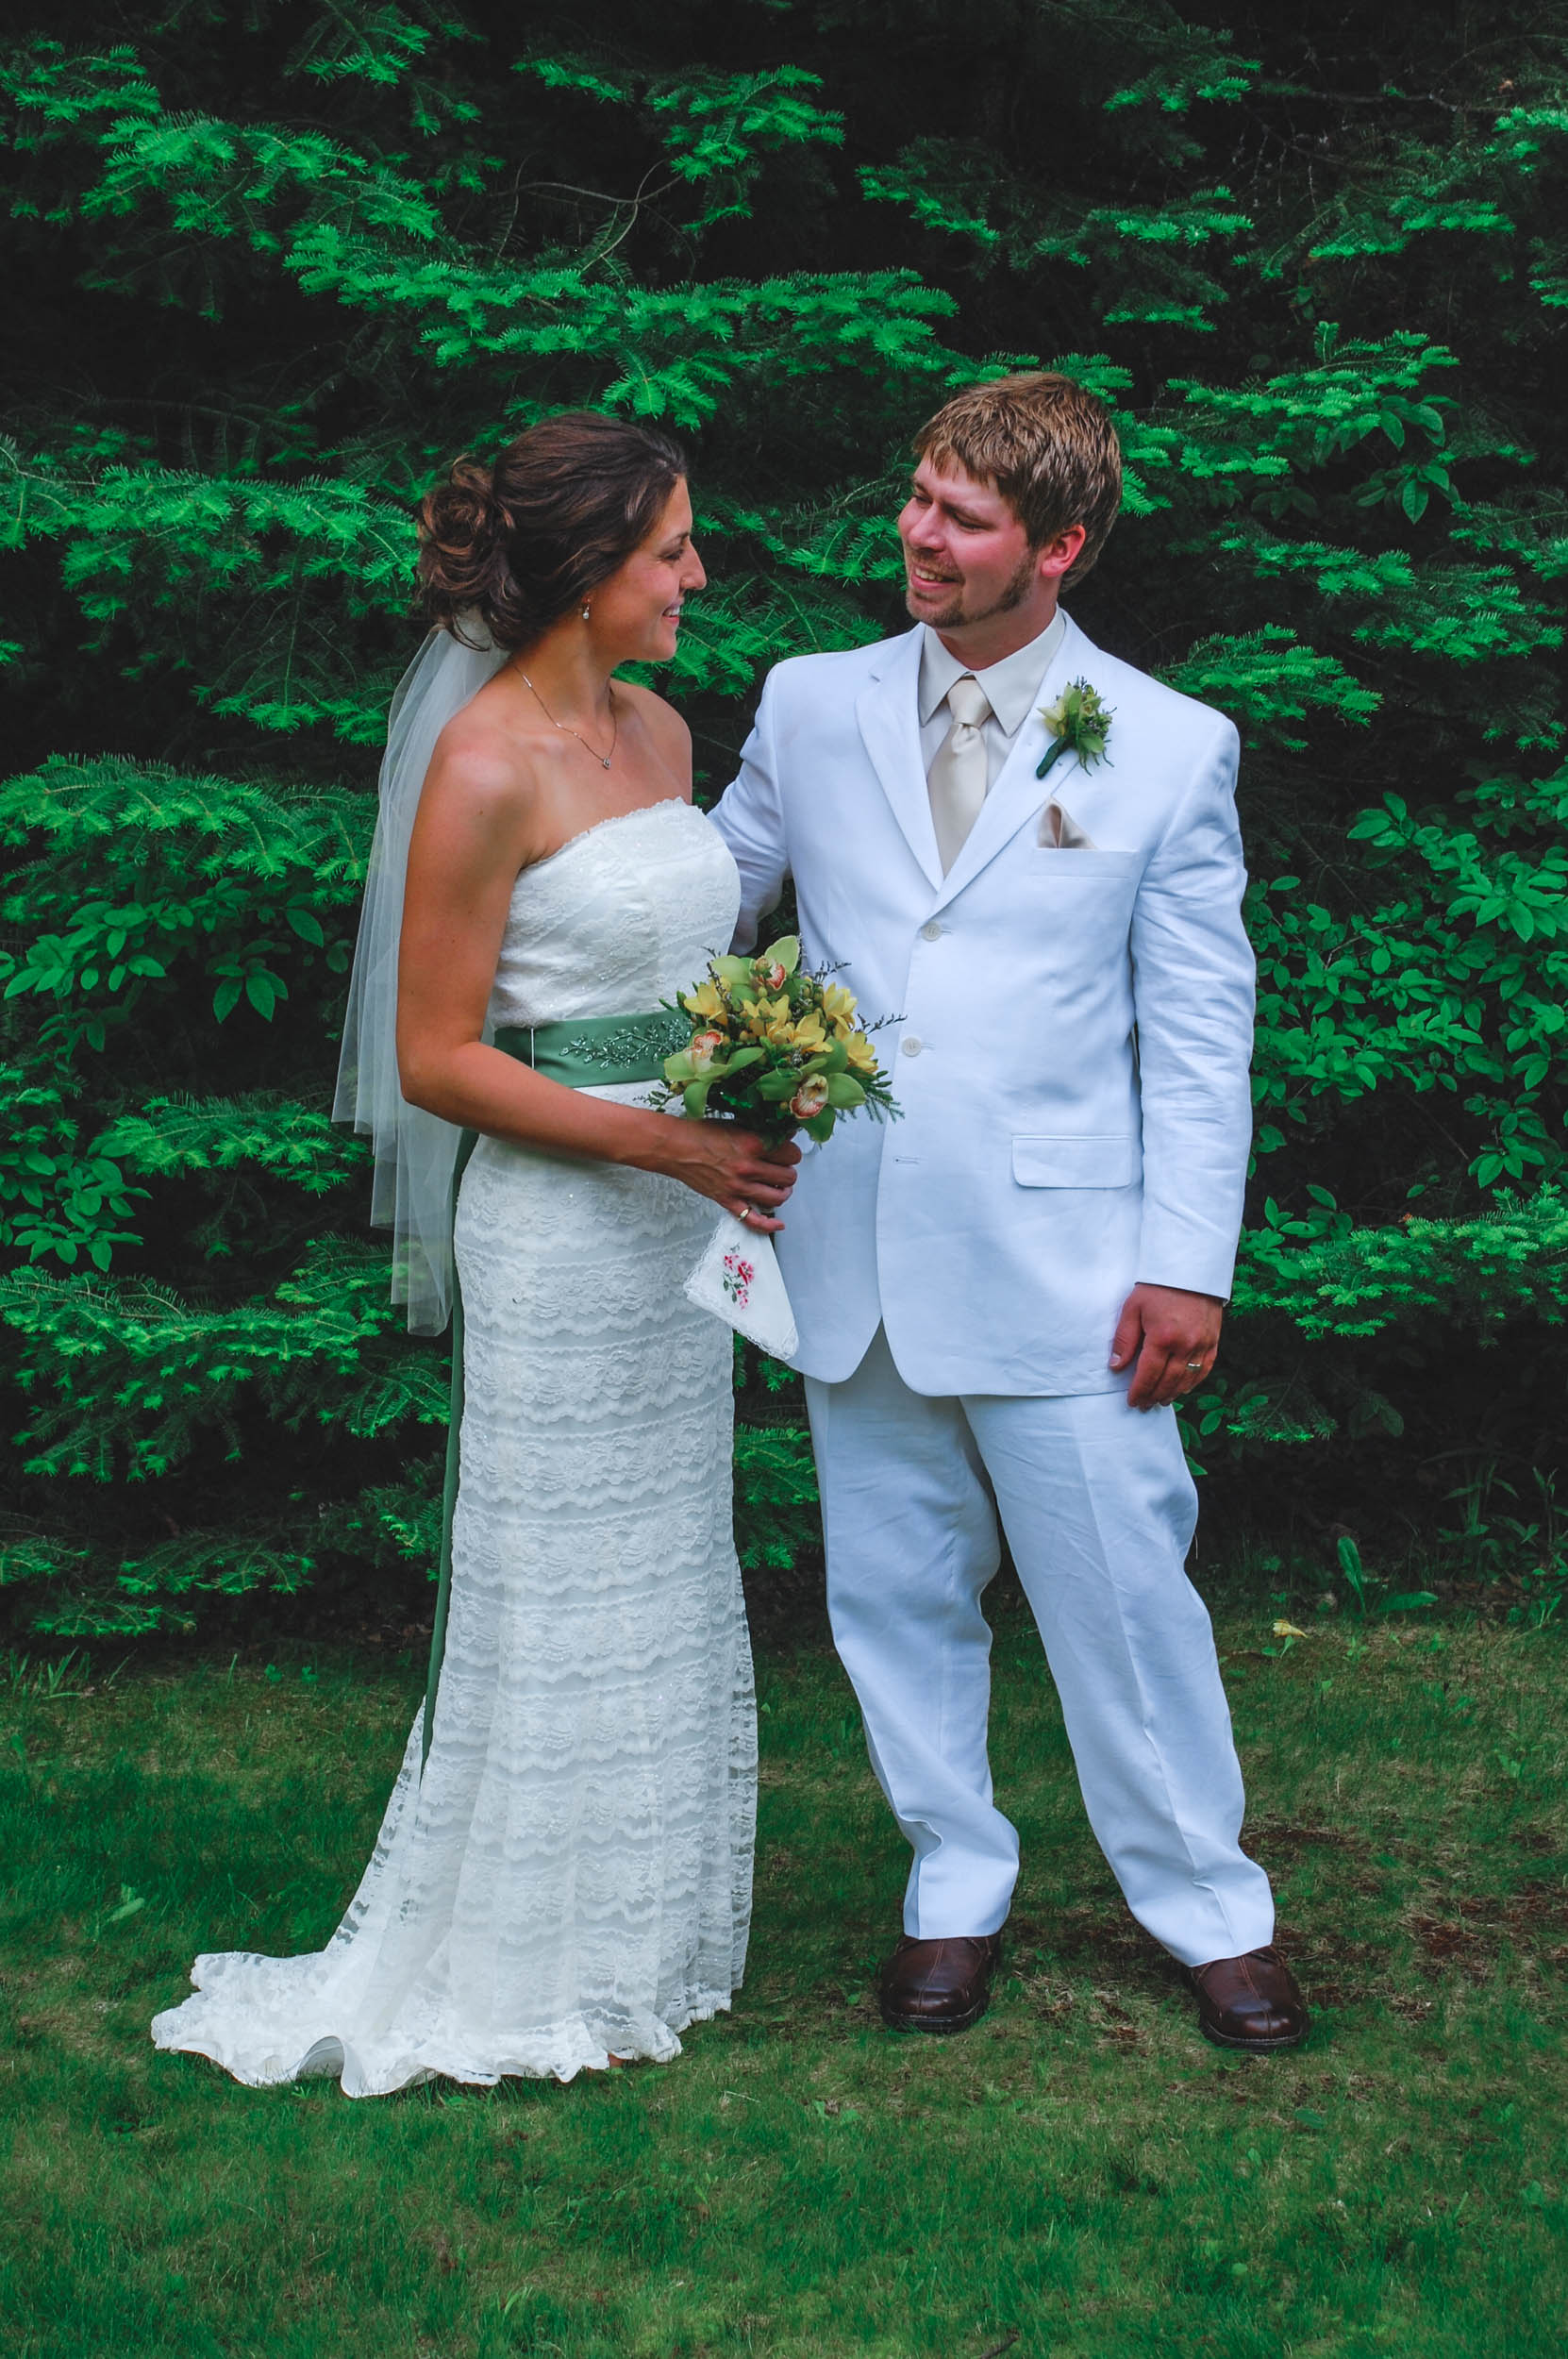 Bride and groom share a moment together after their backyard summer wedding in the Wisconsin countryside